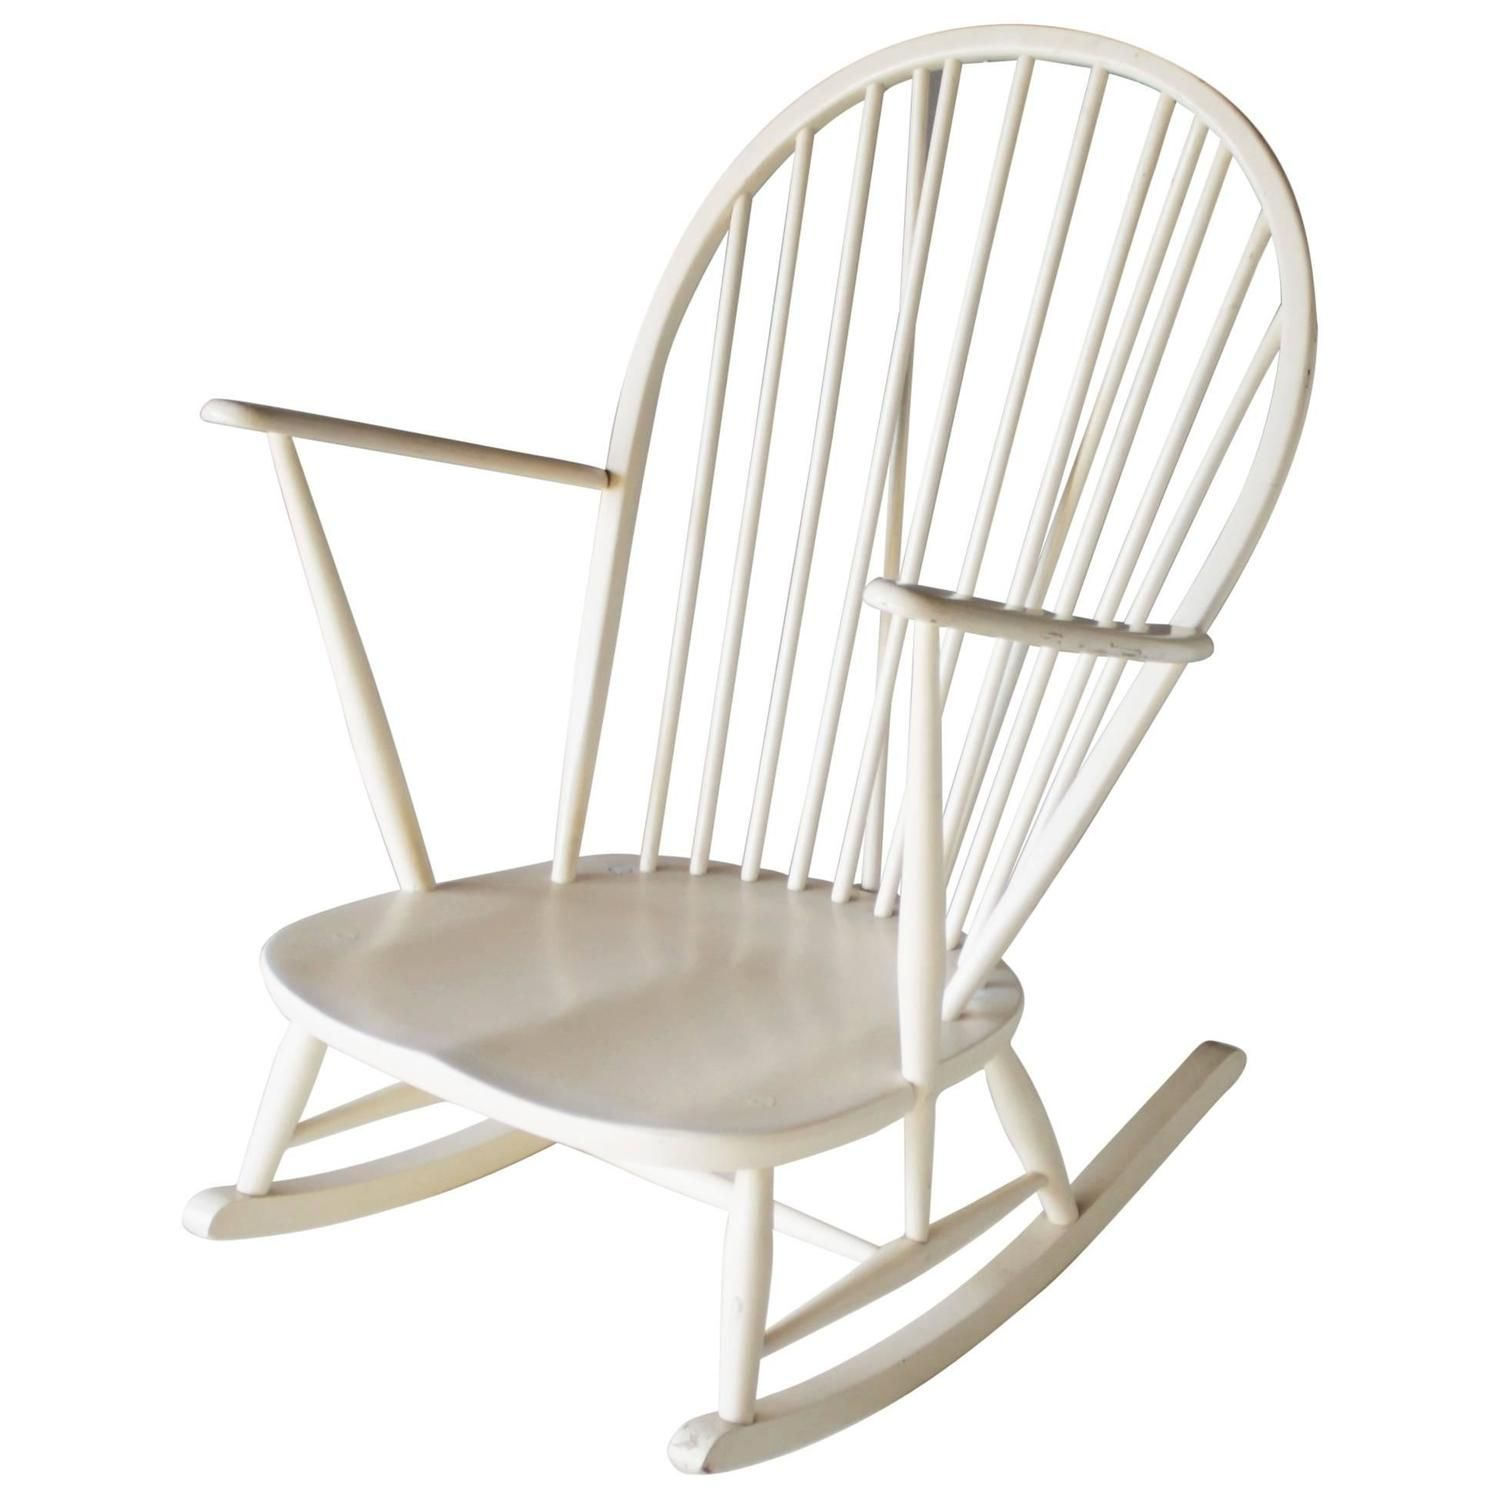 Price reduced sturdy wooden vintage rocking chair made in yugoslavia - Rocking Chair By Lucian Ercolani For Ercol